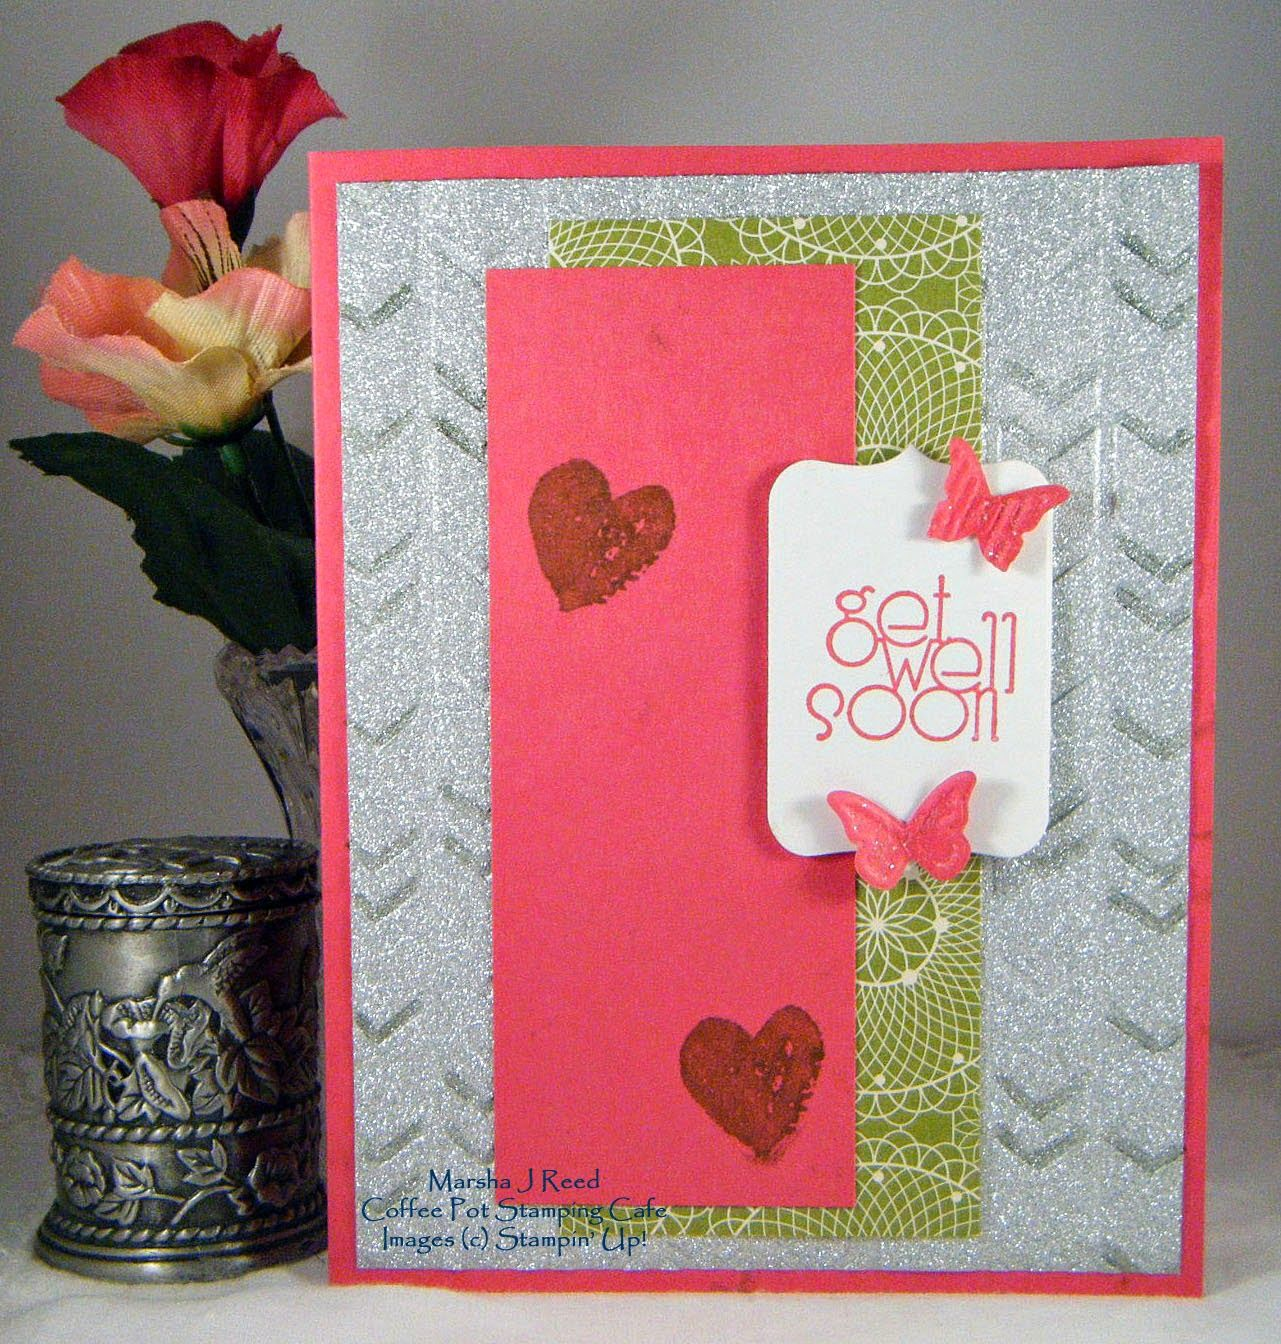 Stamp Sets:  Delightful Dozen, Work of Art (Stampin' Up!); Ink:  Melon Mambo; Stampin' Write Marker:  Lucky Limeade (Stampin' Up!); Card Stock:  Melon Mambo, Whisper White, Festival of Prints Designer Series Paper Stack - retired (Stampin' Up!), Glitzy Glitter Paper Stack (DCWV); Accessories  Tools:  Arrows Embossing Folder, Chalk Talk Framelits, Beautiful Wings Embosslit (Stampin' Up!), Distress Stickles (Ranger), Dimensionals